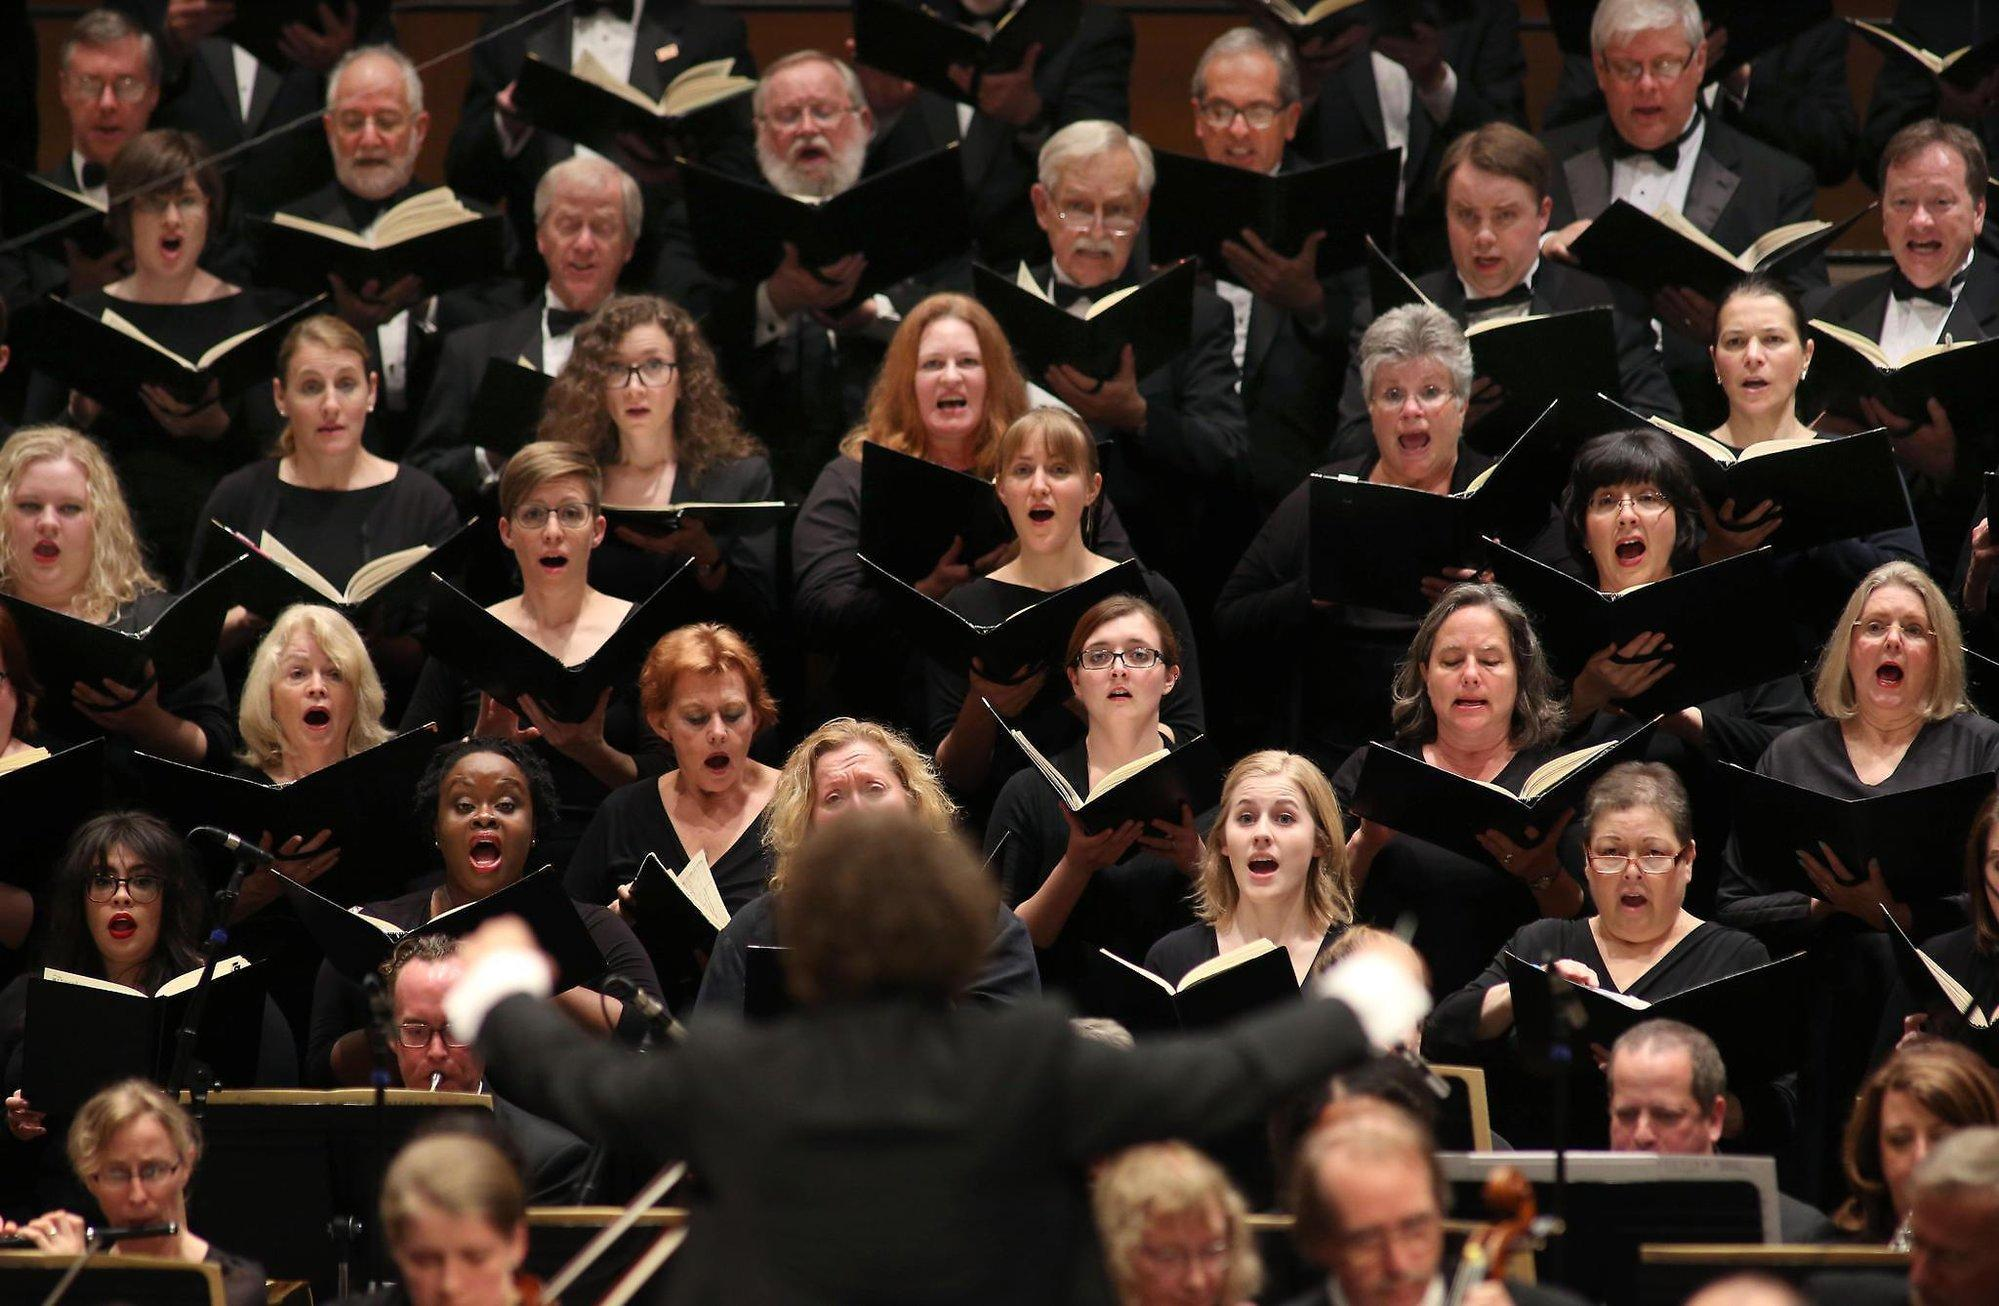 december 2016 listings for the milwaukee symphony orchestra | wxxi-fm